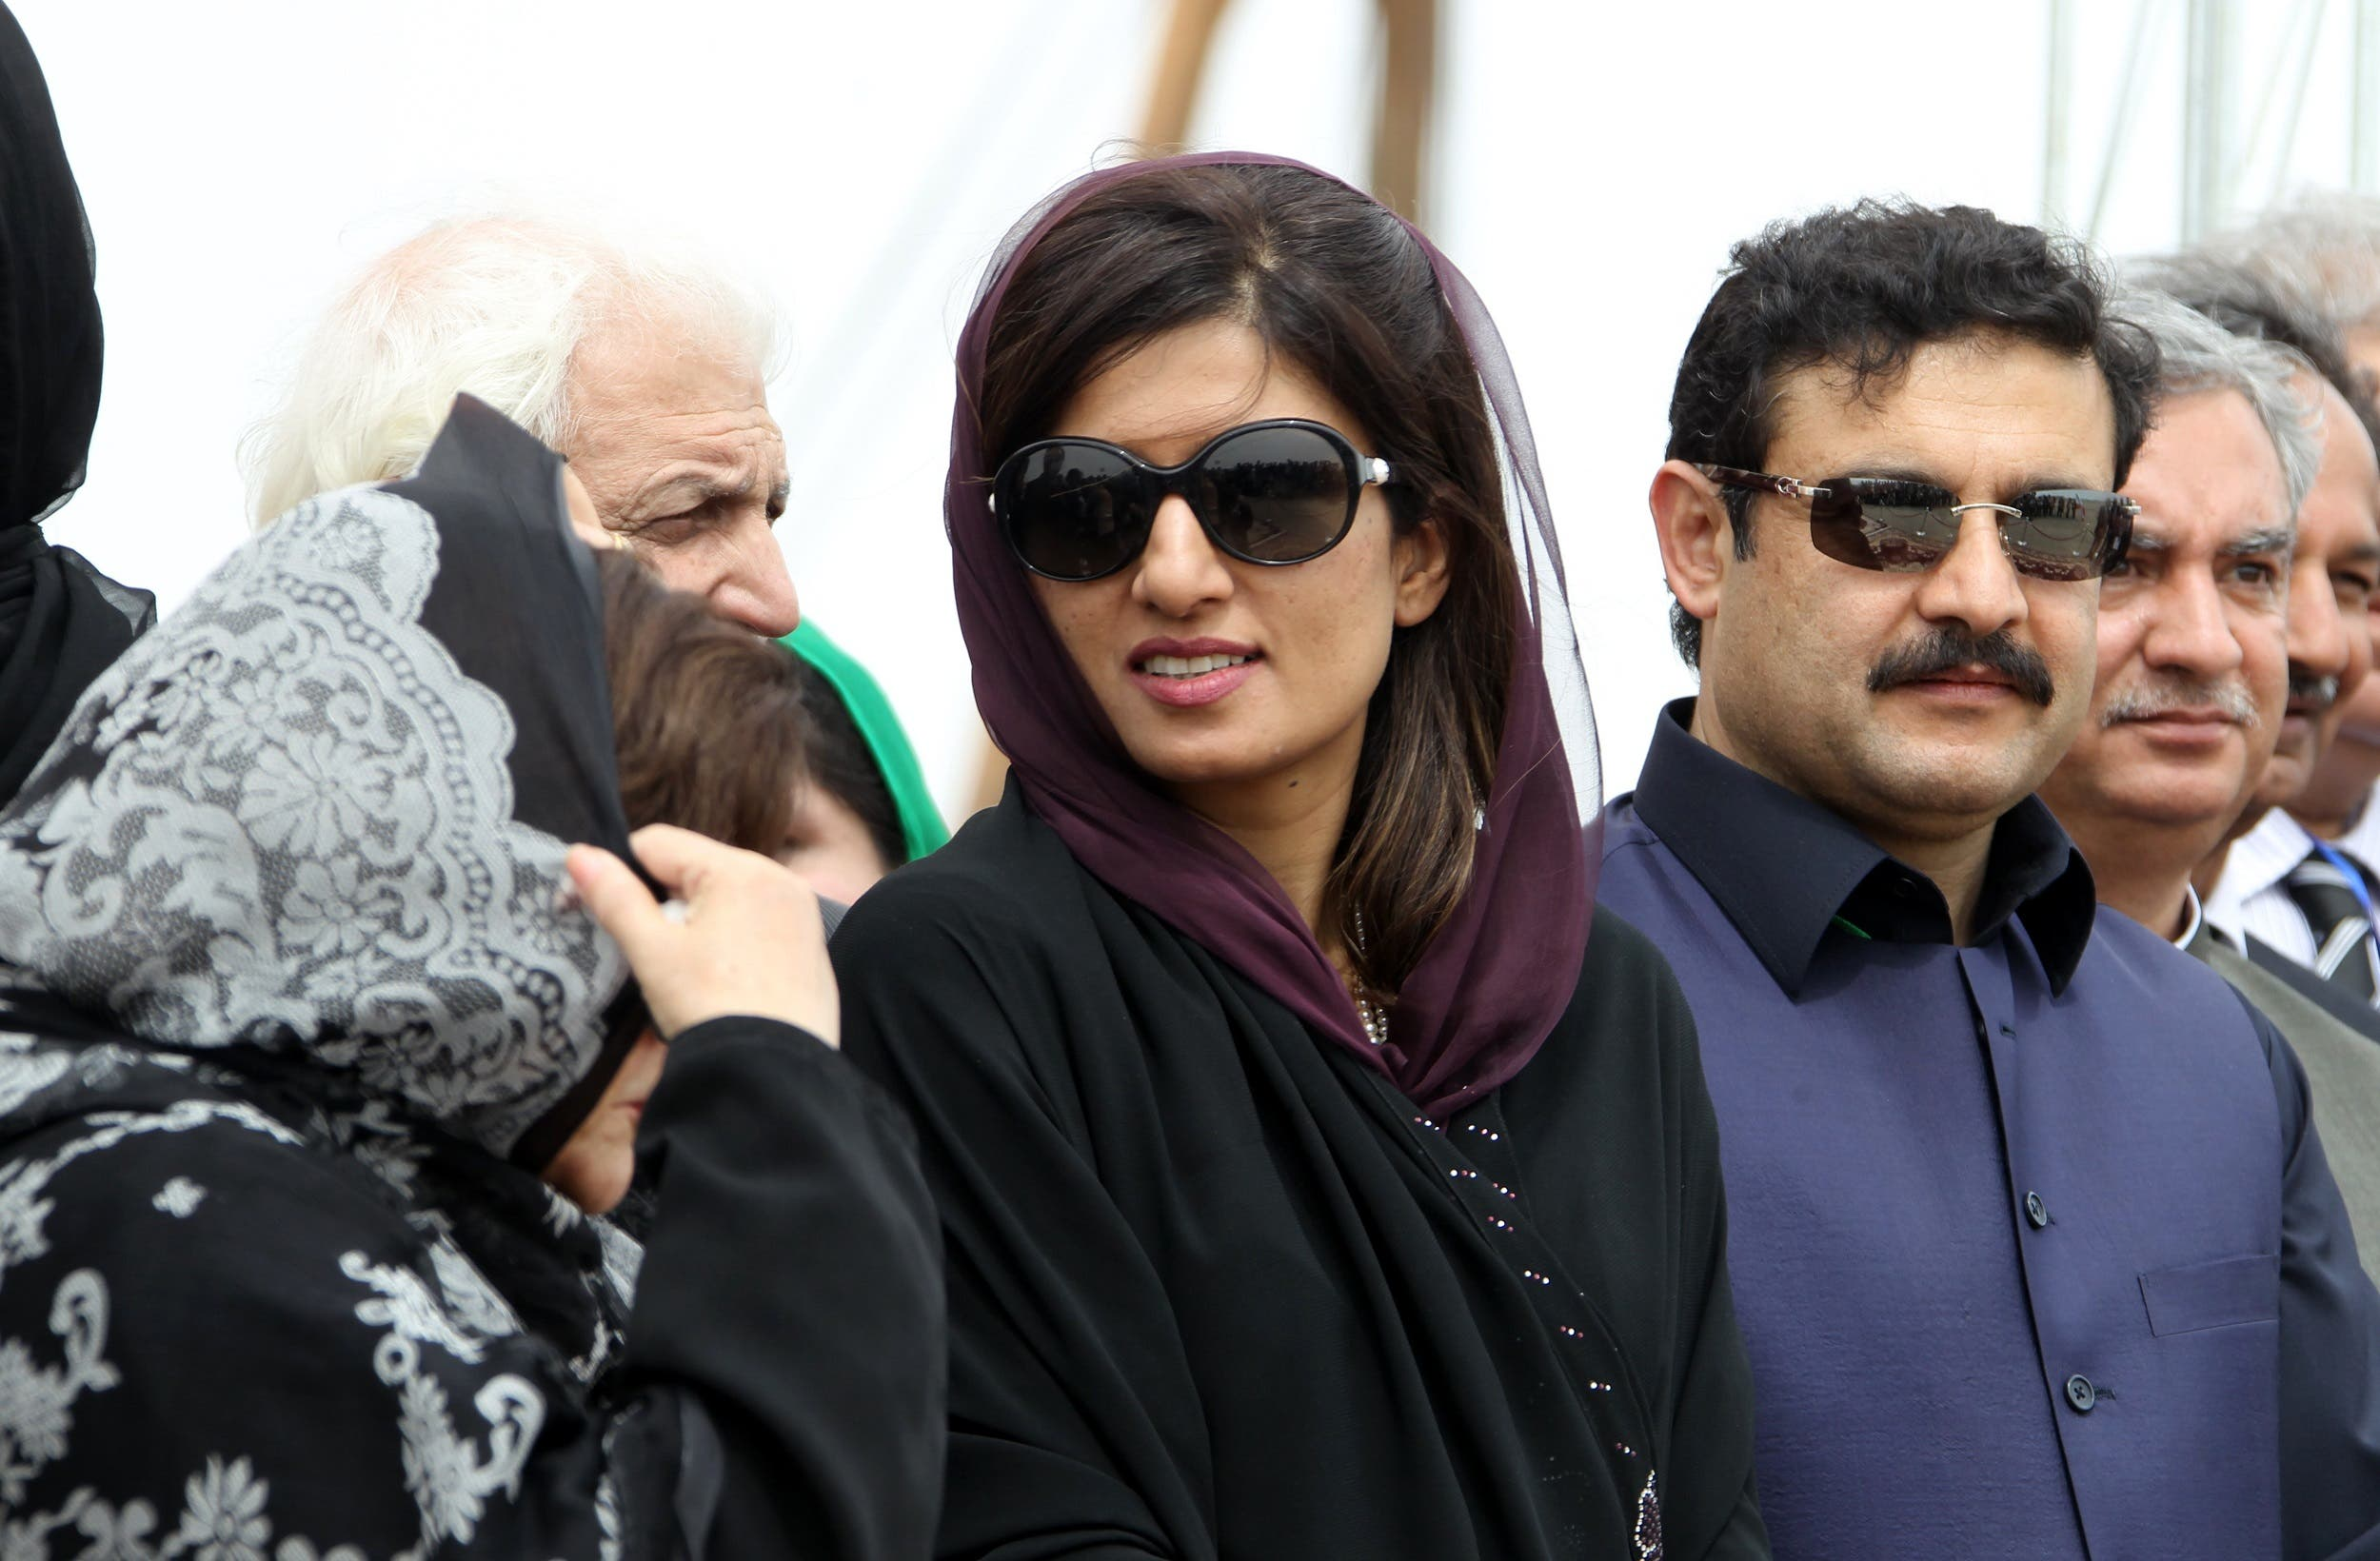 Pakistani Foreign Minister Hina Rabbani Khar (C) attends the inauguration ceremony of a gas pipeline linking Iran and Pakistan in the Iranian border city of Chabahar on March 11, 2013. (AFP)